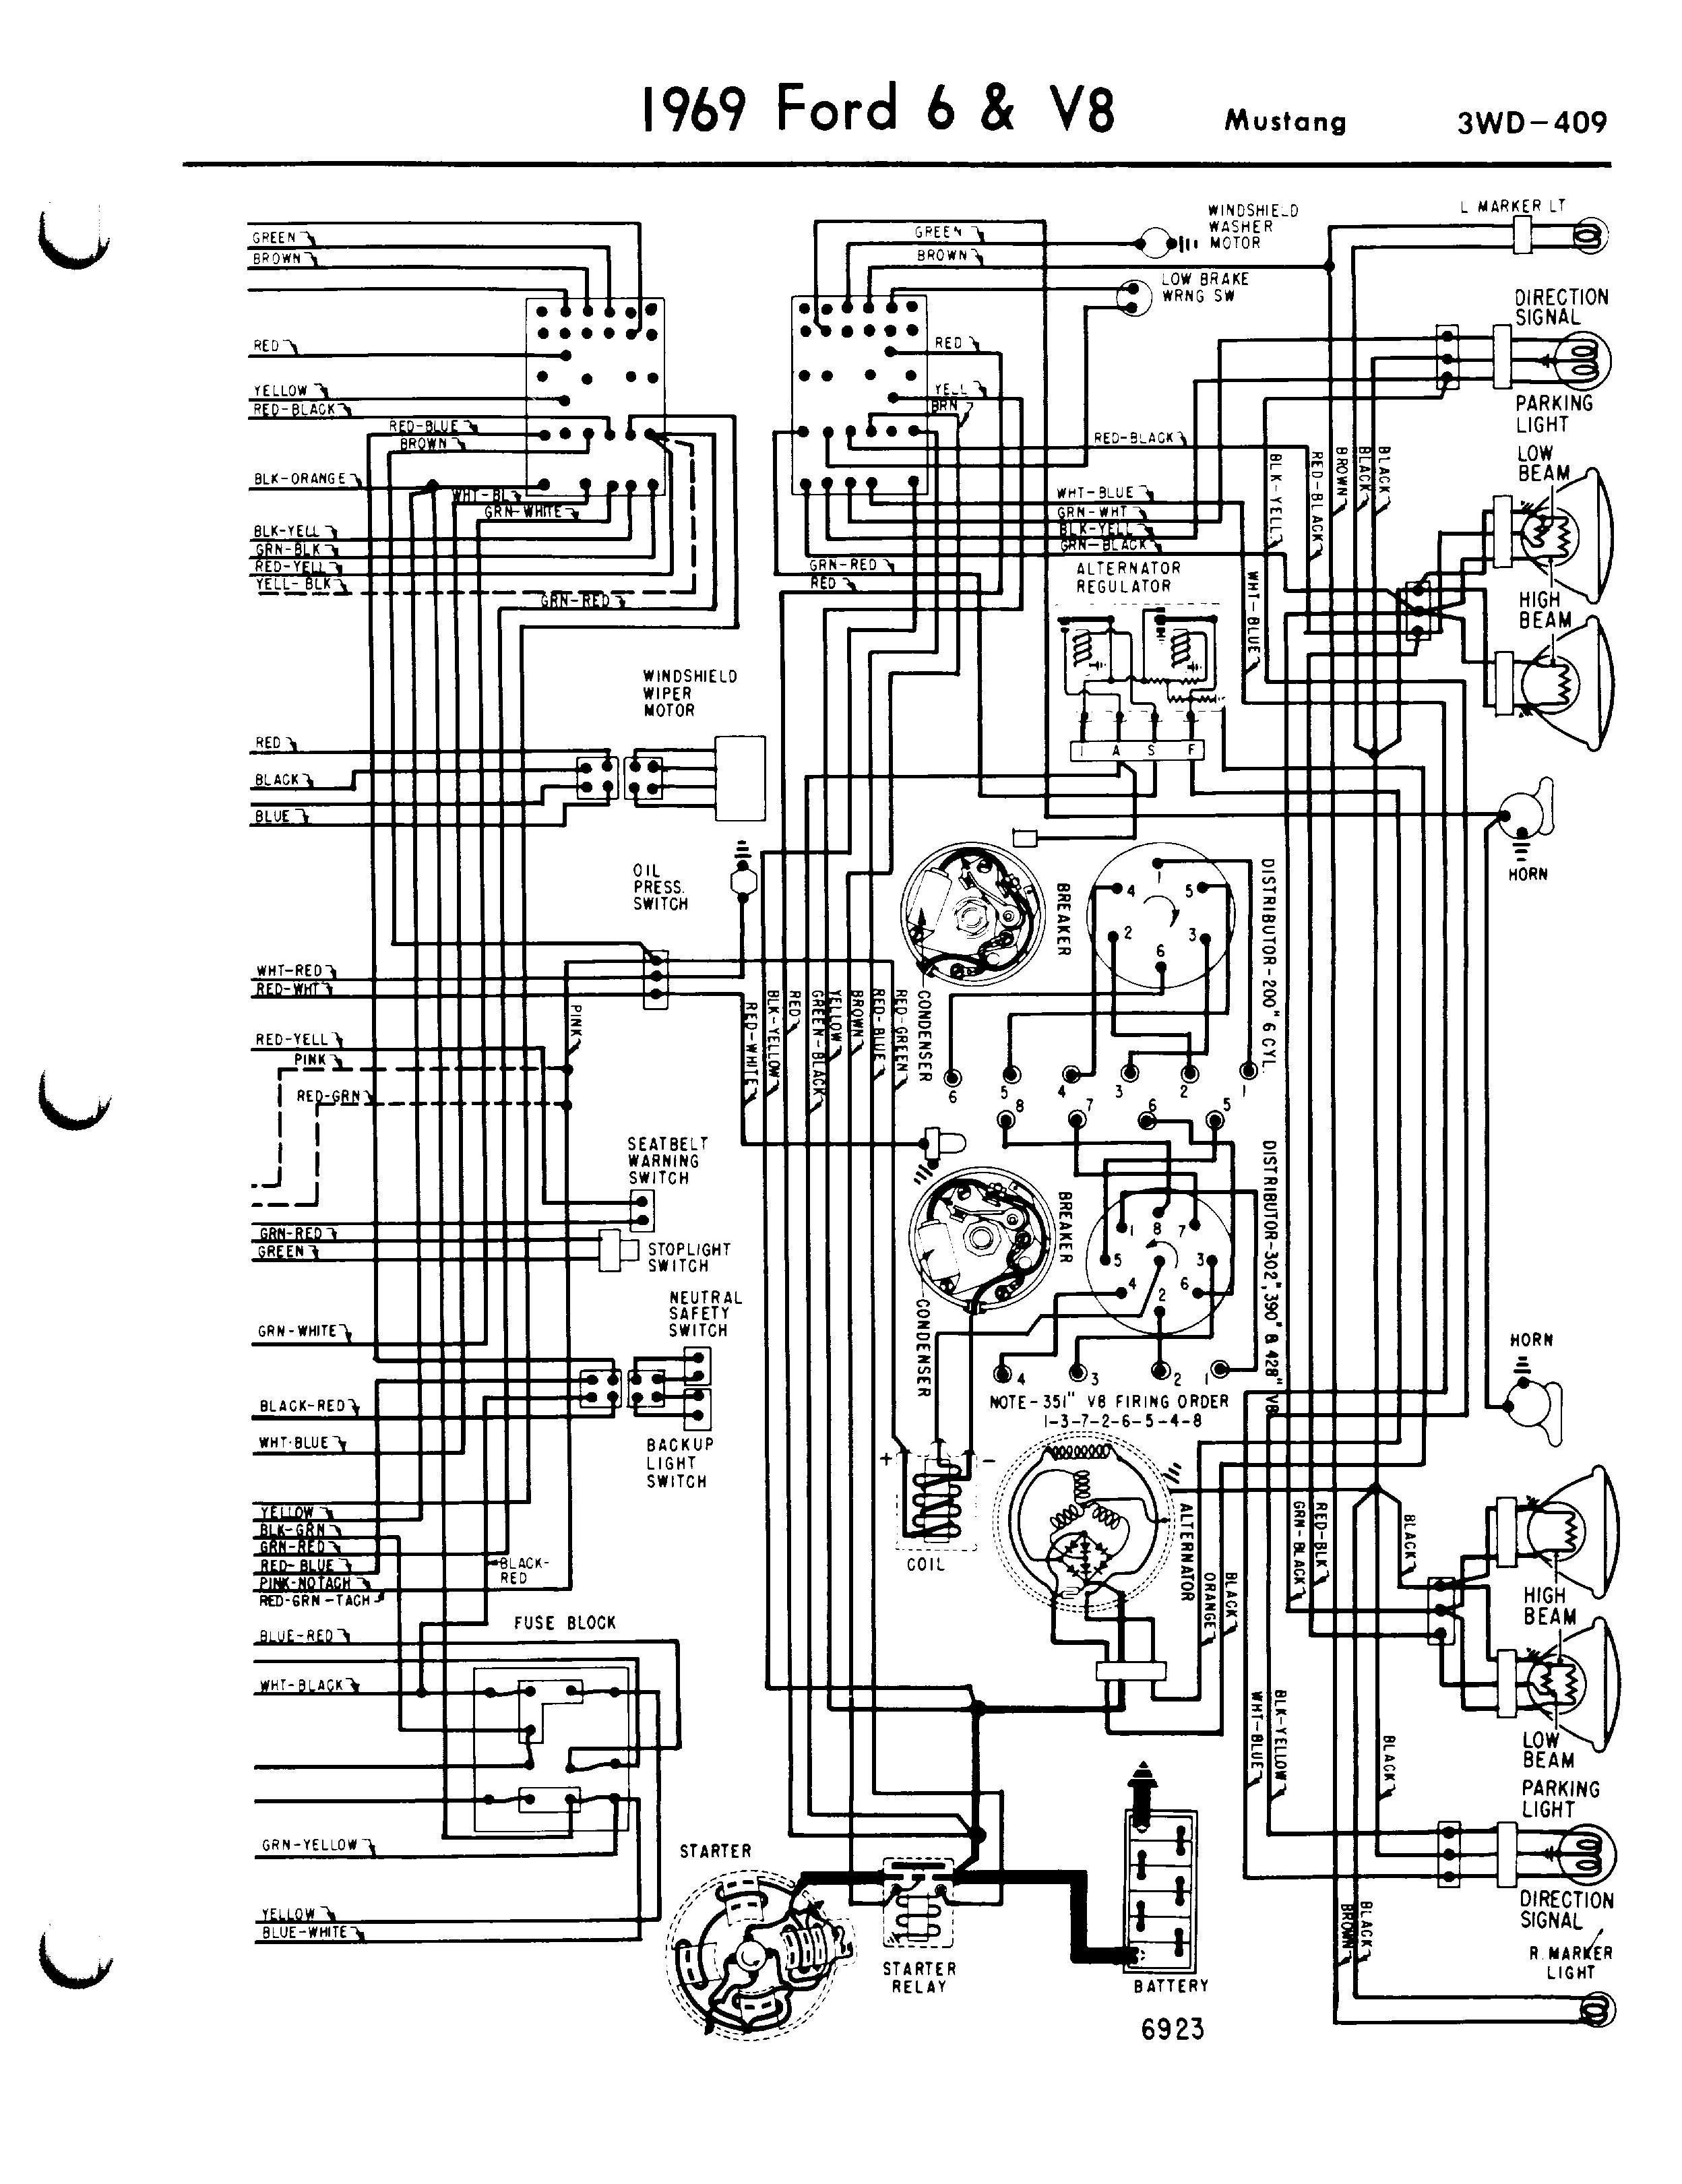 opel astra f 1995 wiring diagram for car audio equalizer alternator 1993 ford mustang 89 4 cylinder data89 engine diagrams best library